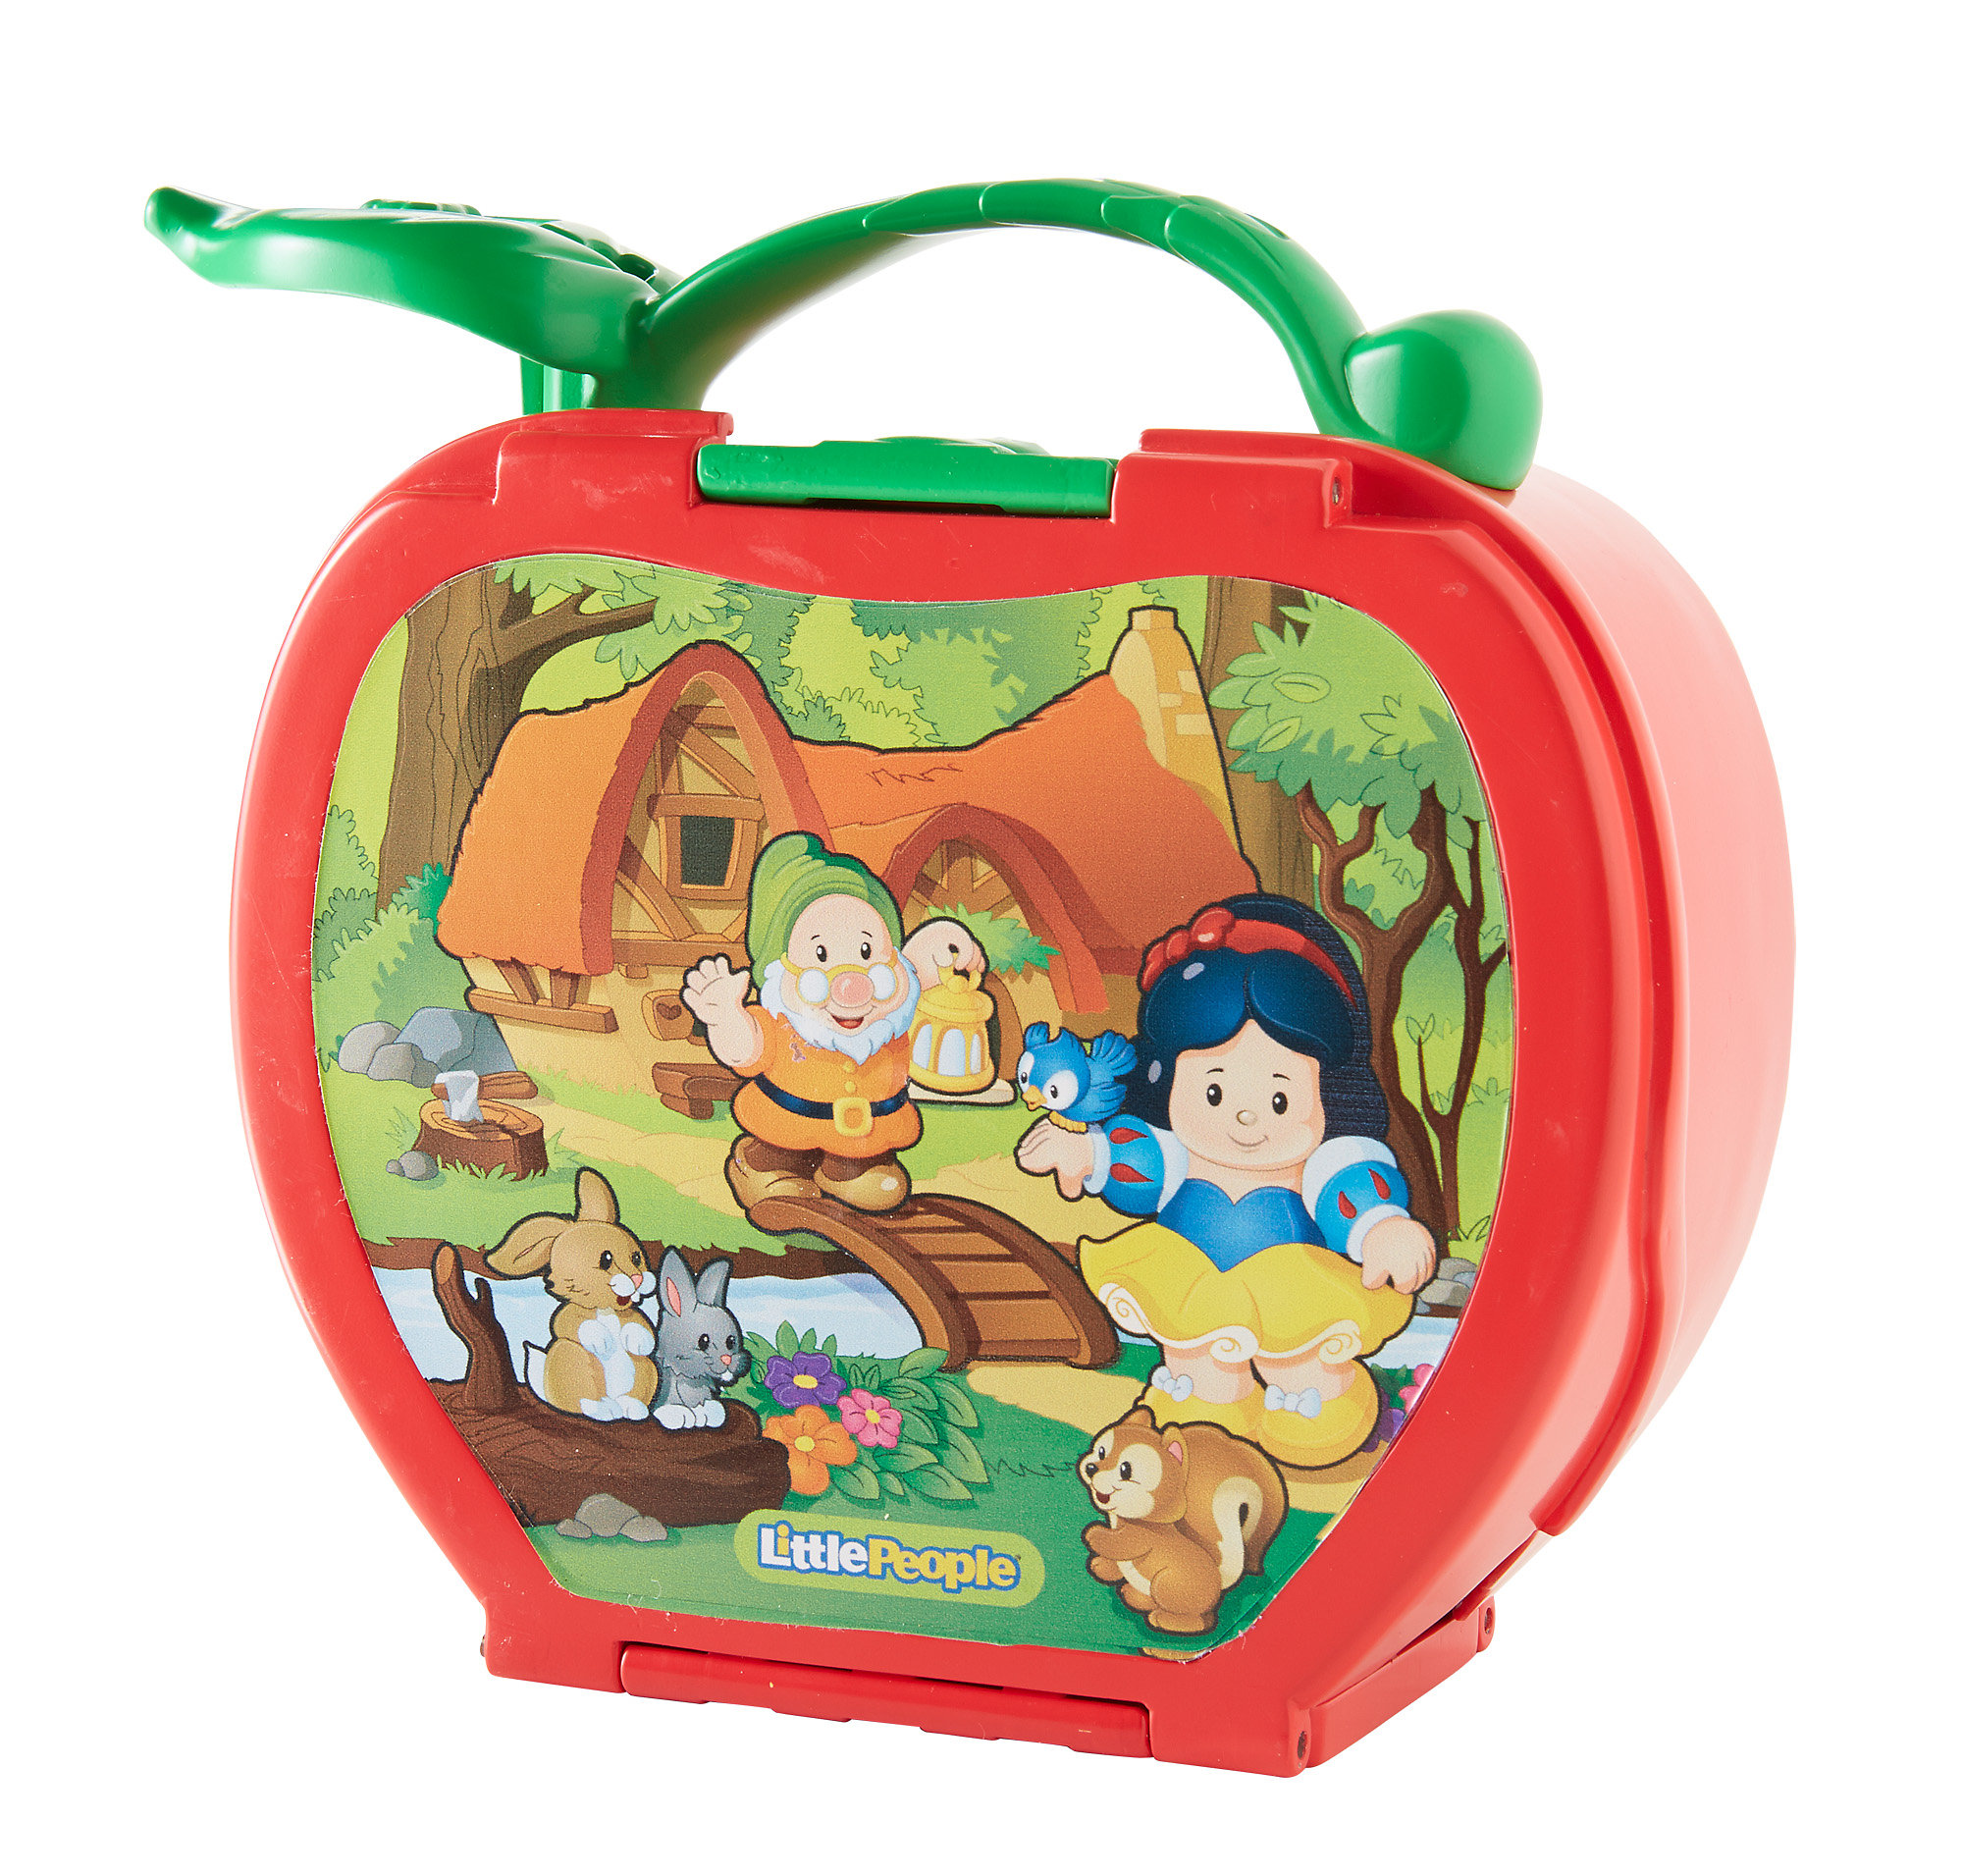 Disney Princess Snow White's Fold 'N Go Apple By Little People